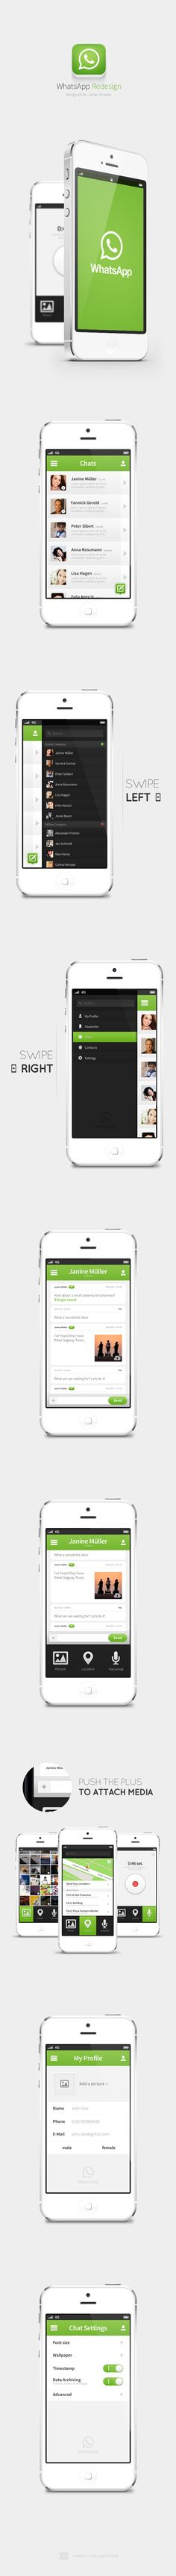 WhatsApp - Redesign Concept by Julian Kraske, via Behance